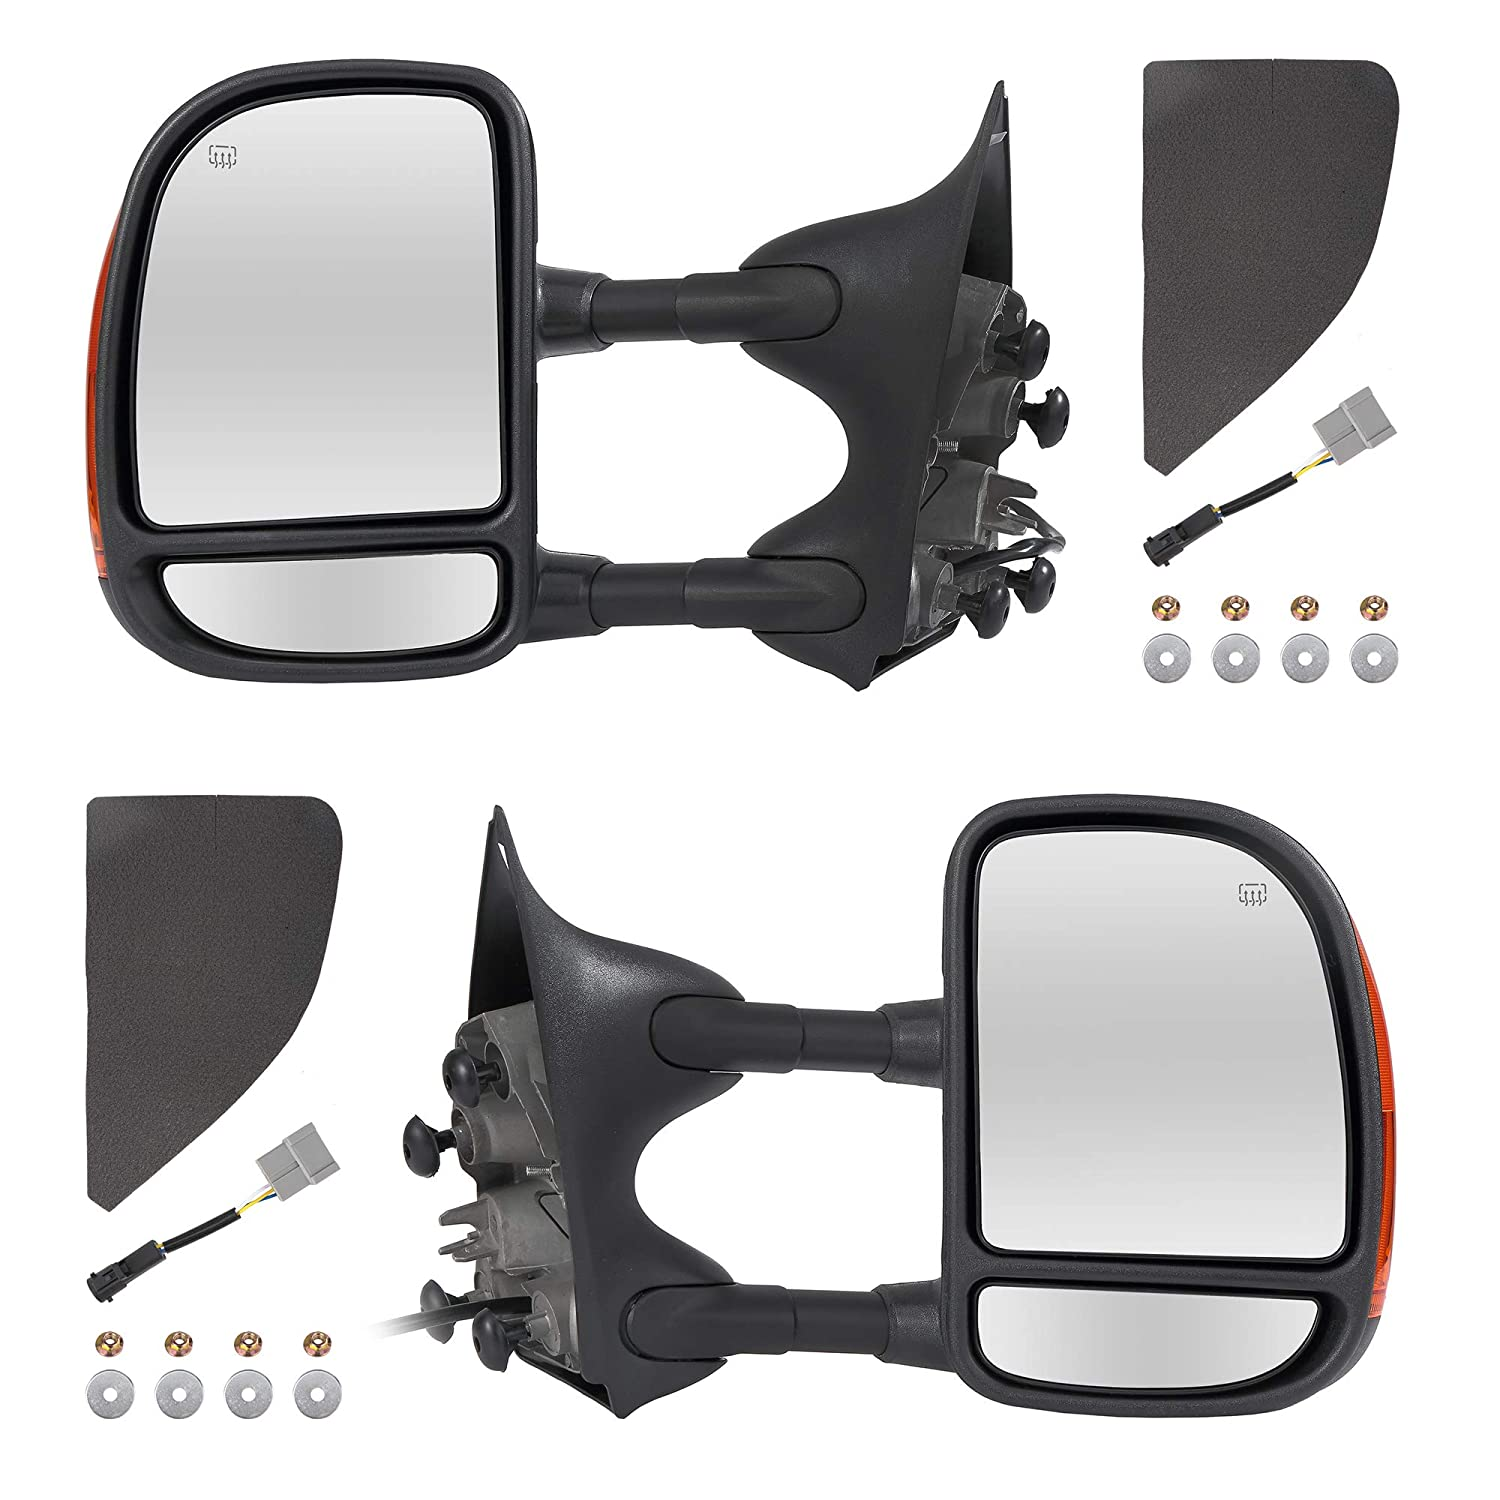 Towing Mirrors Passenger /& Driver Side Power Operated /& Heated With Amber Light Black Finish Fits 99-07 Ford F-250 F-350 F-450 F-550 Super Duty Excursion Manual Folding